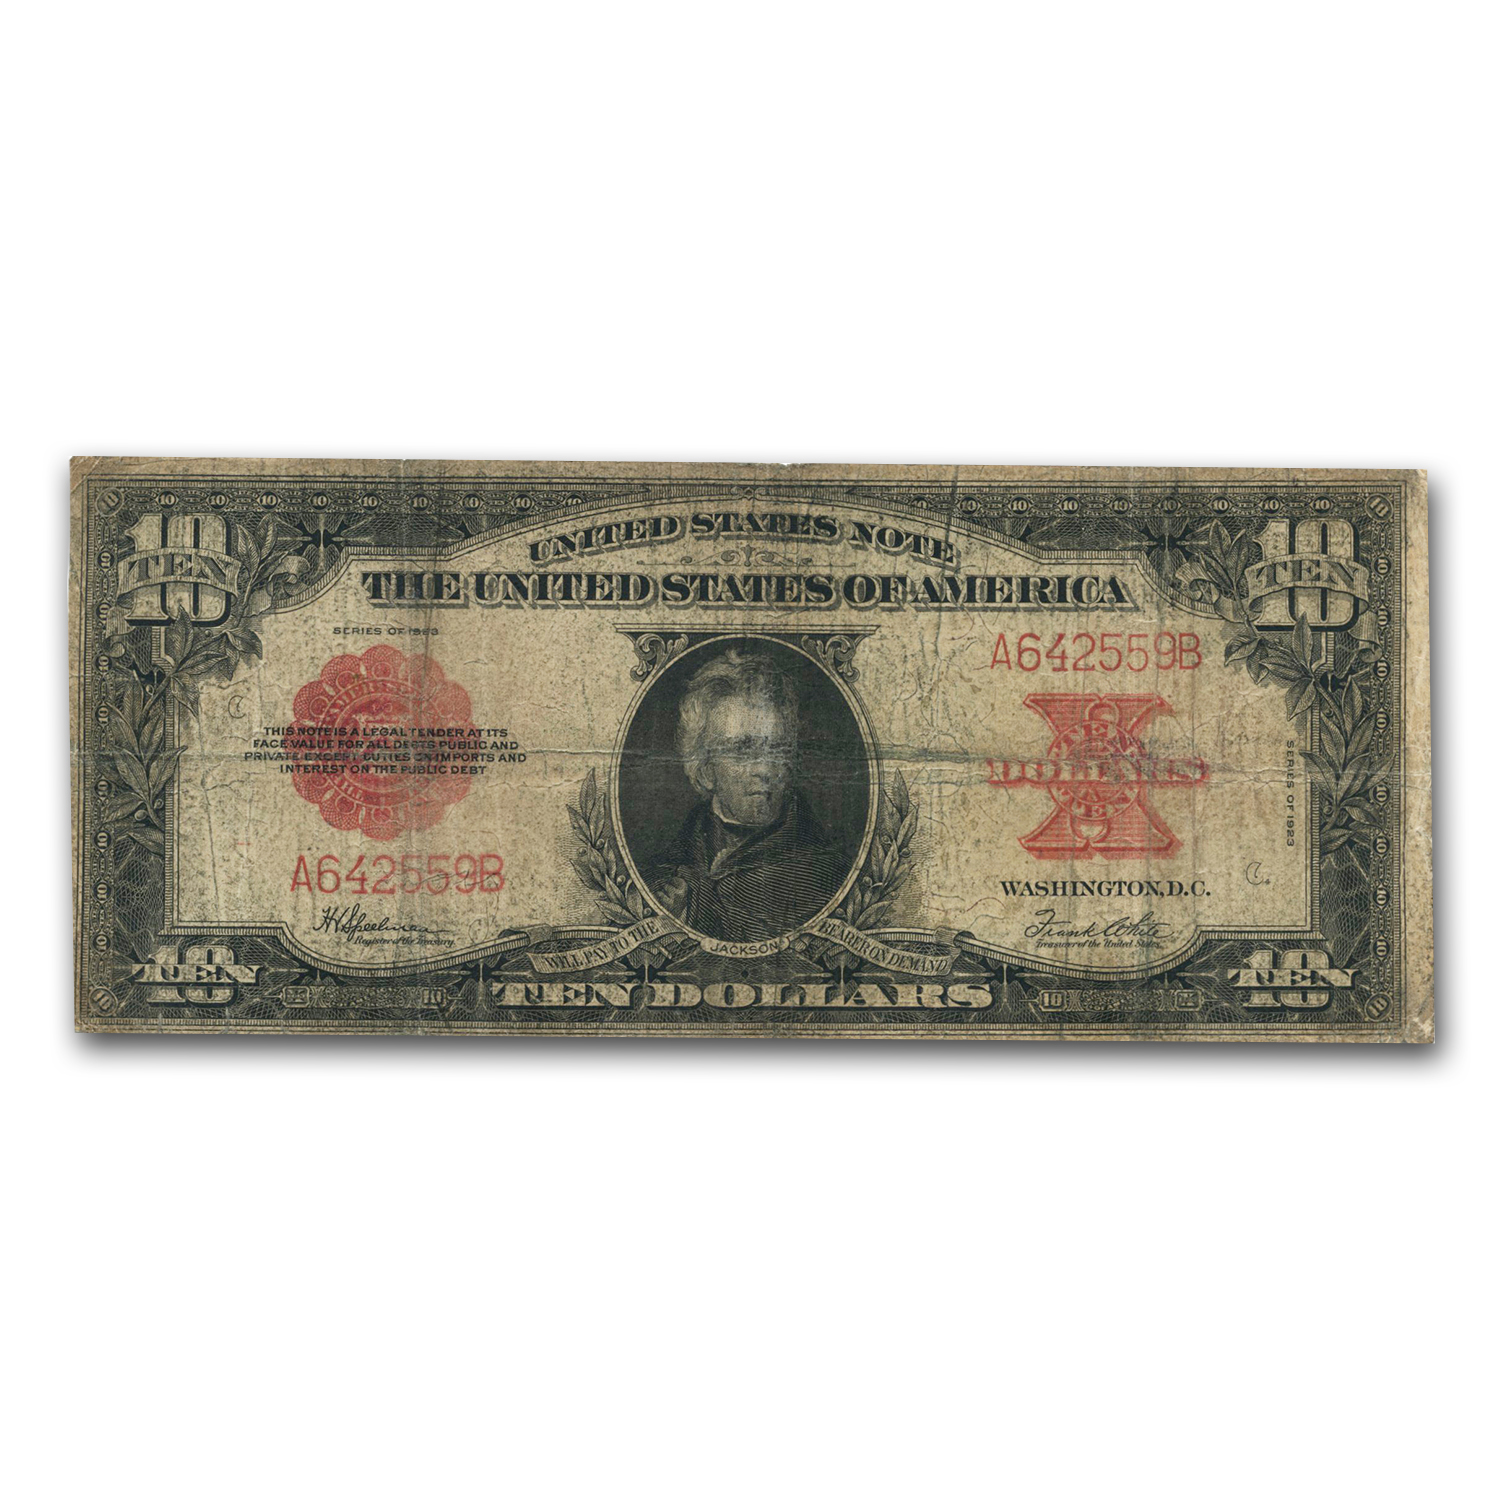 1923 $10 United States Note Red Seal VG (Poker Chip)